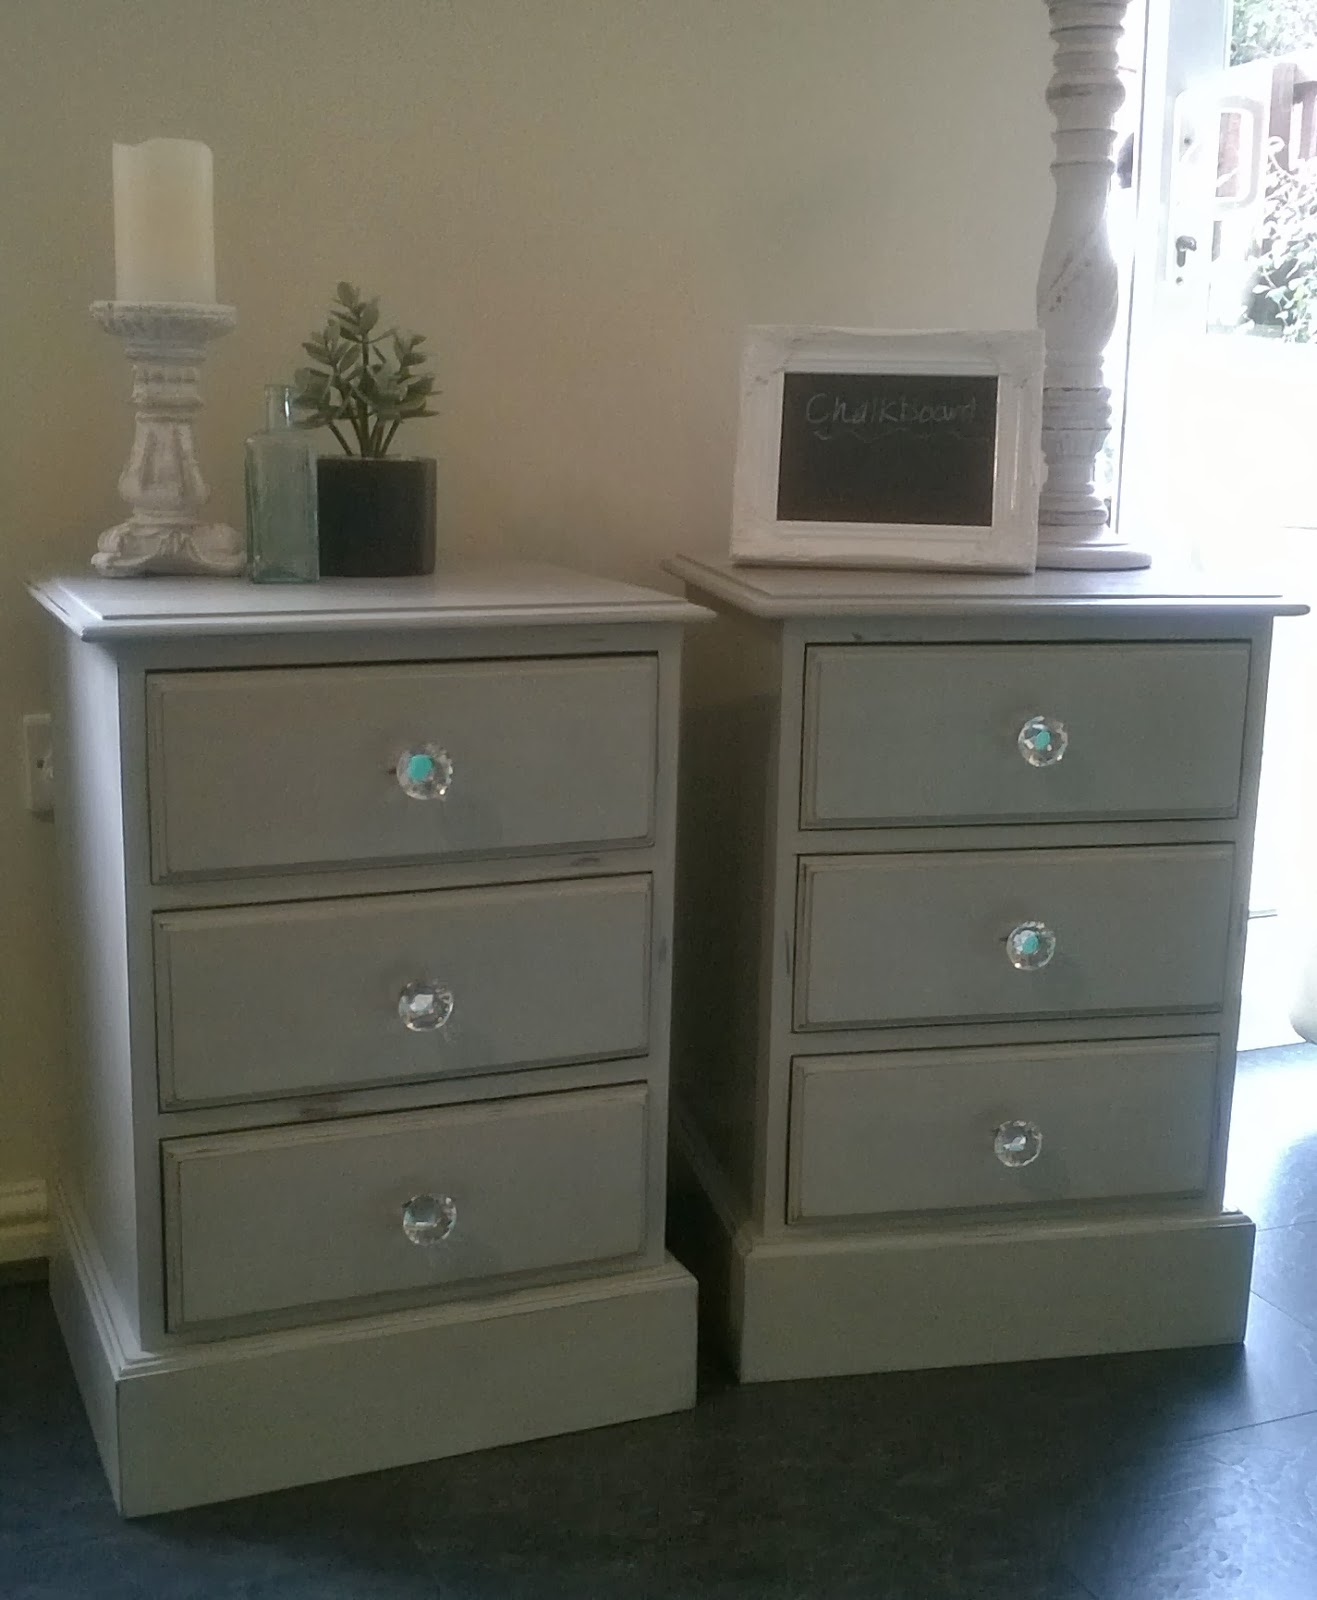 Paris Grey Chalk Paint Cabinets: The Shabby Chic Sisters: Annie Sloan Paris Grey Bedside